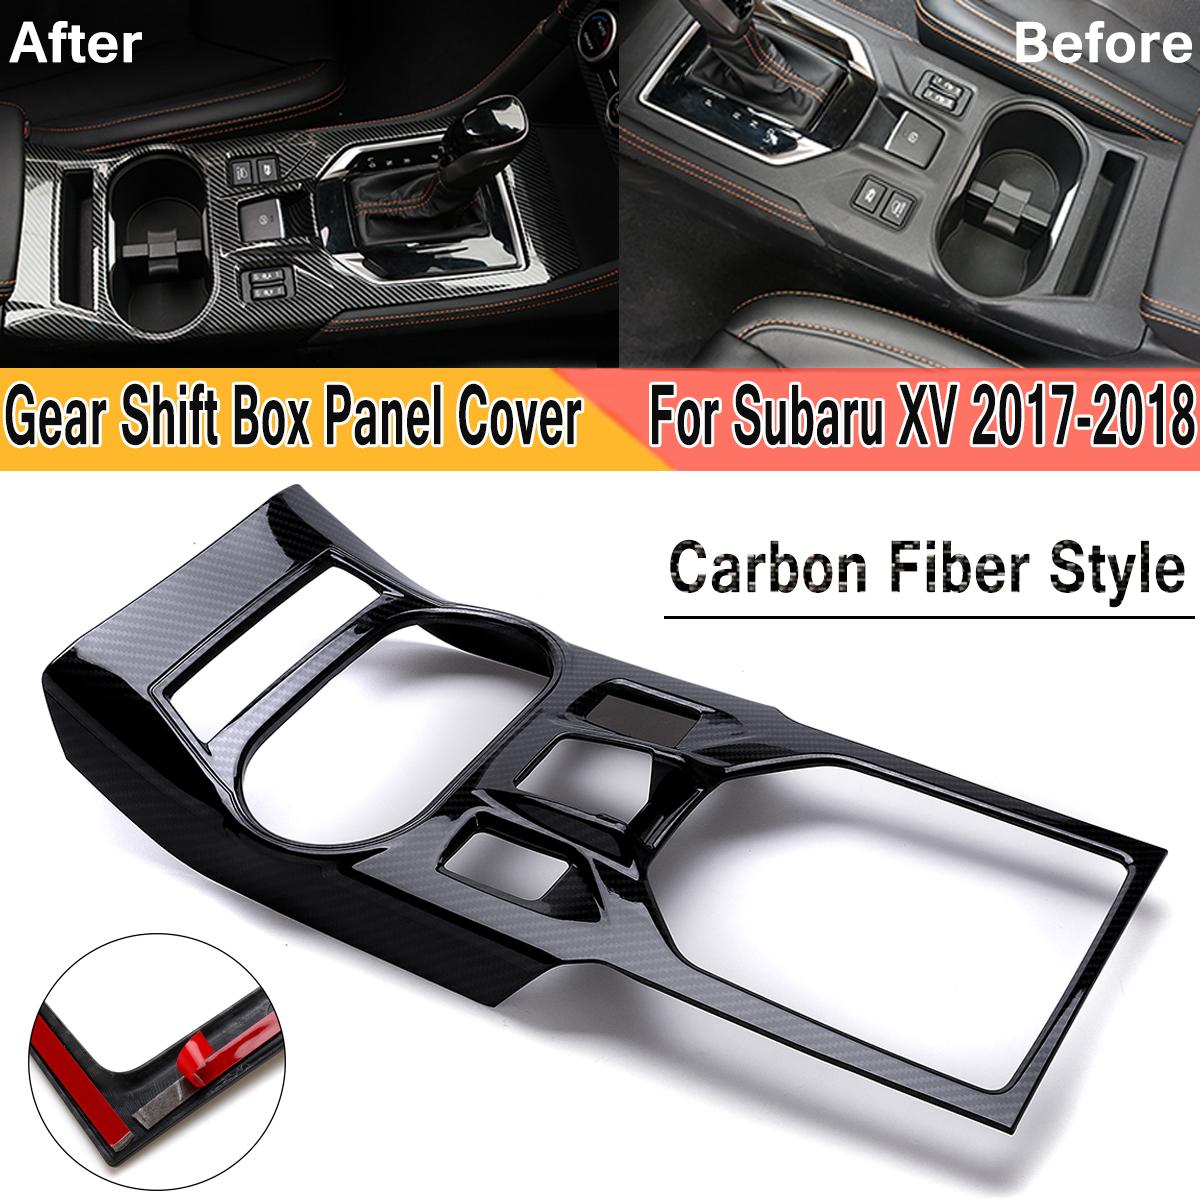 Carbon Fiber Style ABS Interior Gear Shift Box Panel Overlay Cover Trim For Subaru XV 2017-2018 Interior Dashboard Accessories interior for chevrolet camaro 2016 2017 abs carbon fiber style transmission shift gear panel cover trim 1 piece page 1